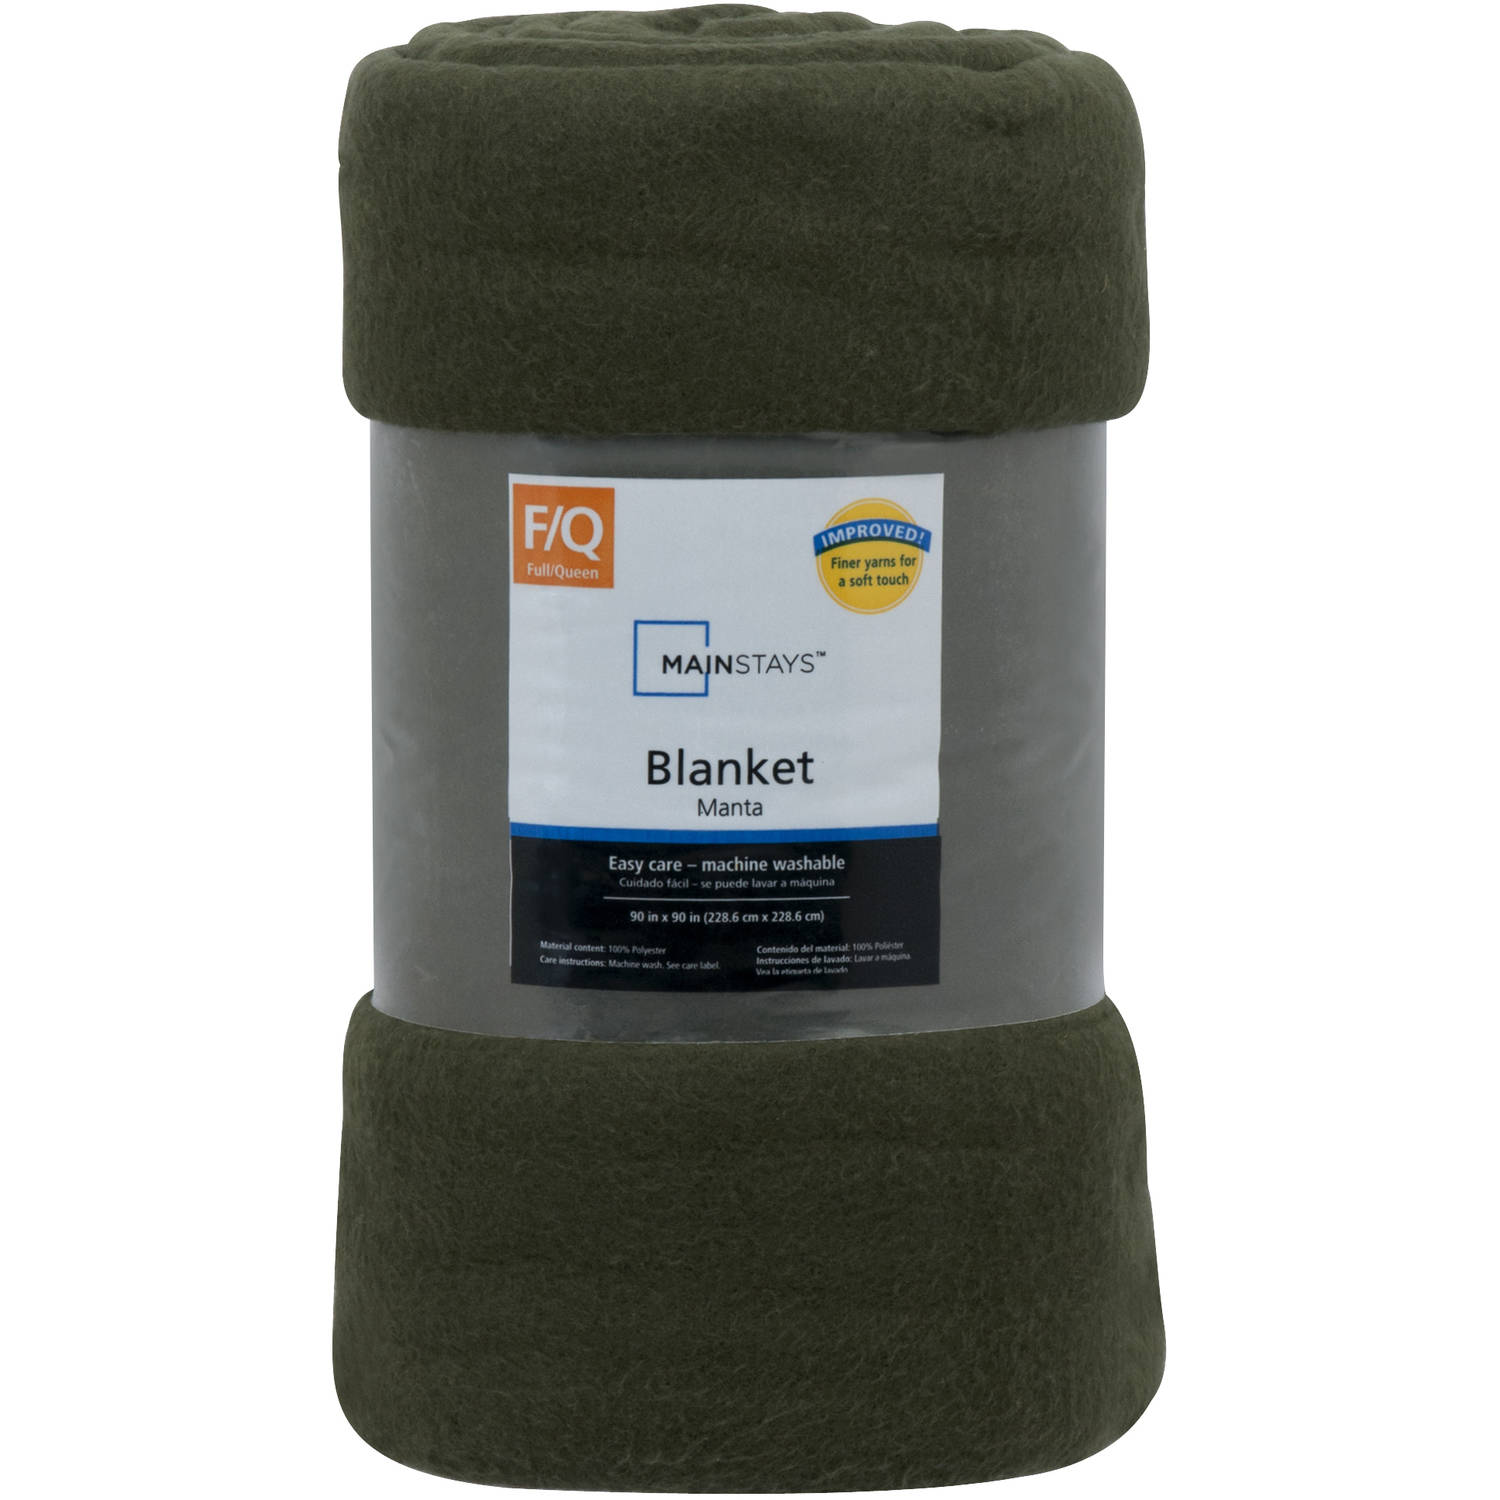 green blankets  throws  walmartcom - mainstays value blanket sea turtle